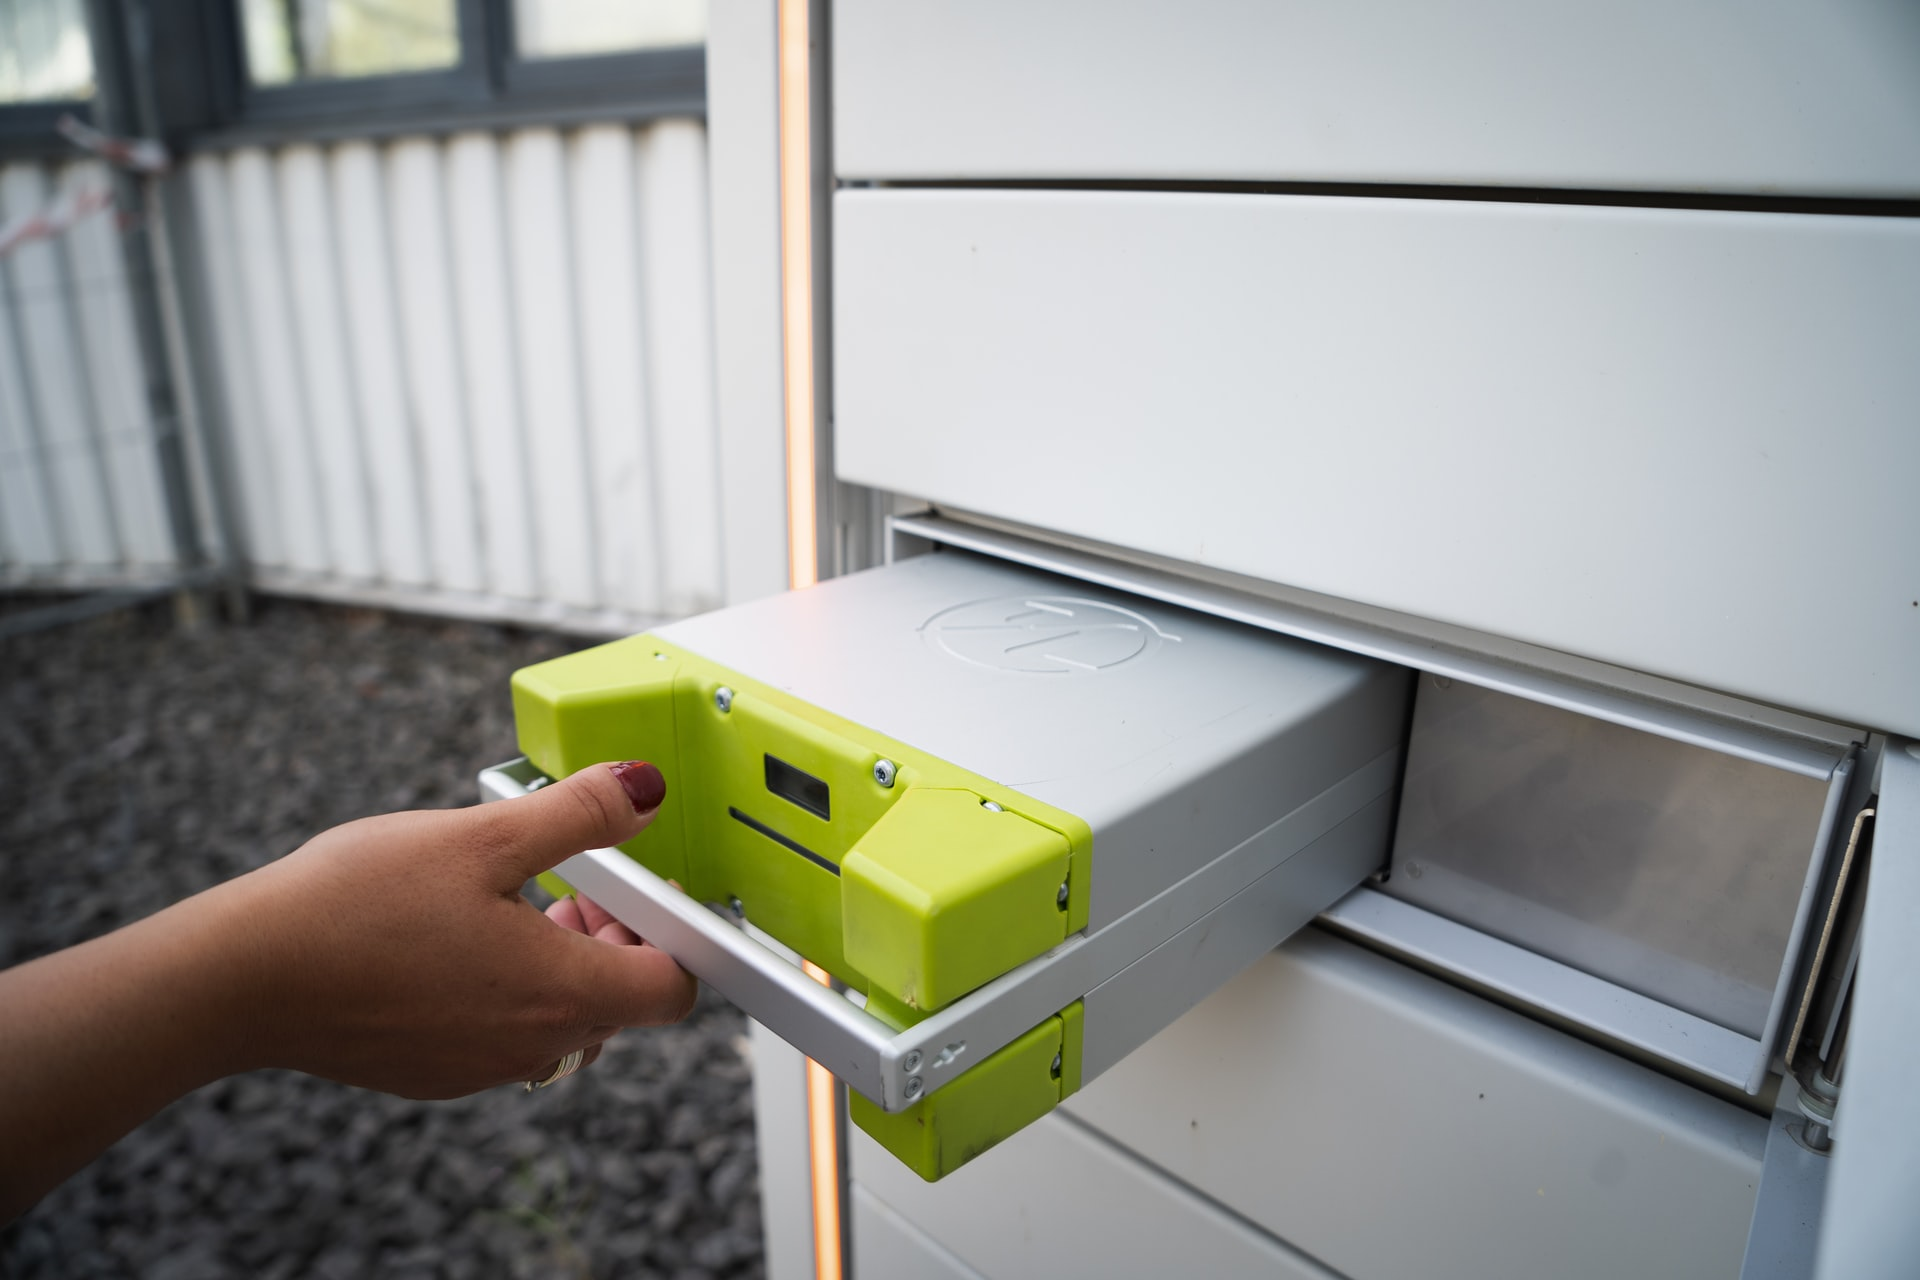 Battery Storage Deployment is Booming, Boosting Demand for Lithium and Nickel